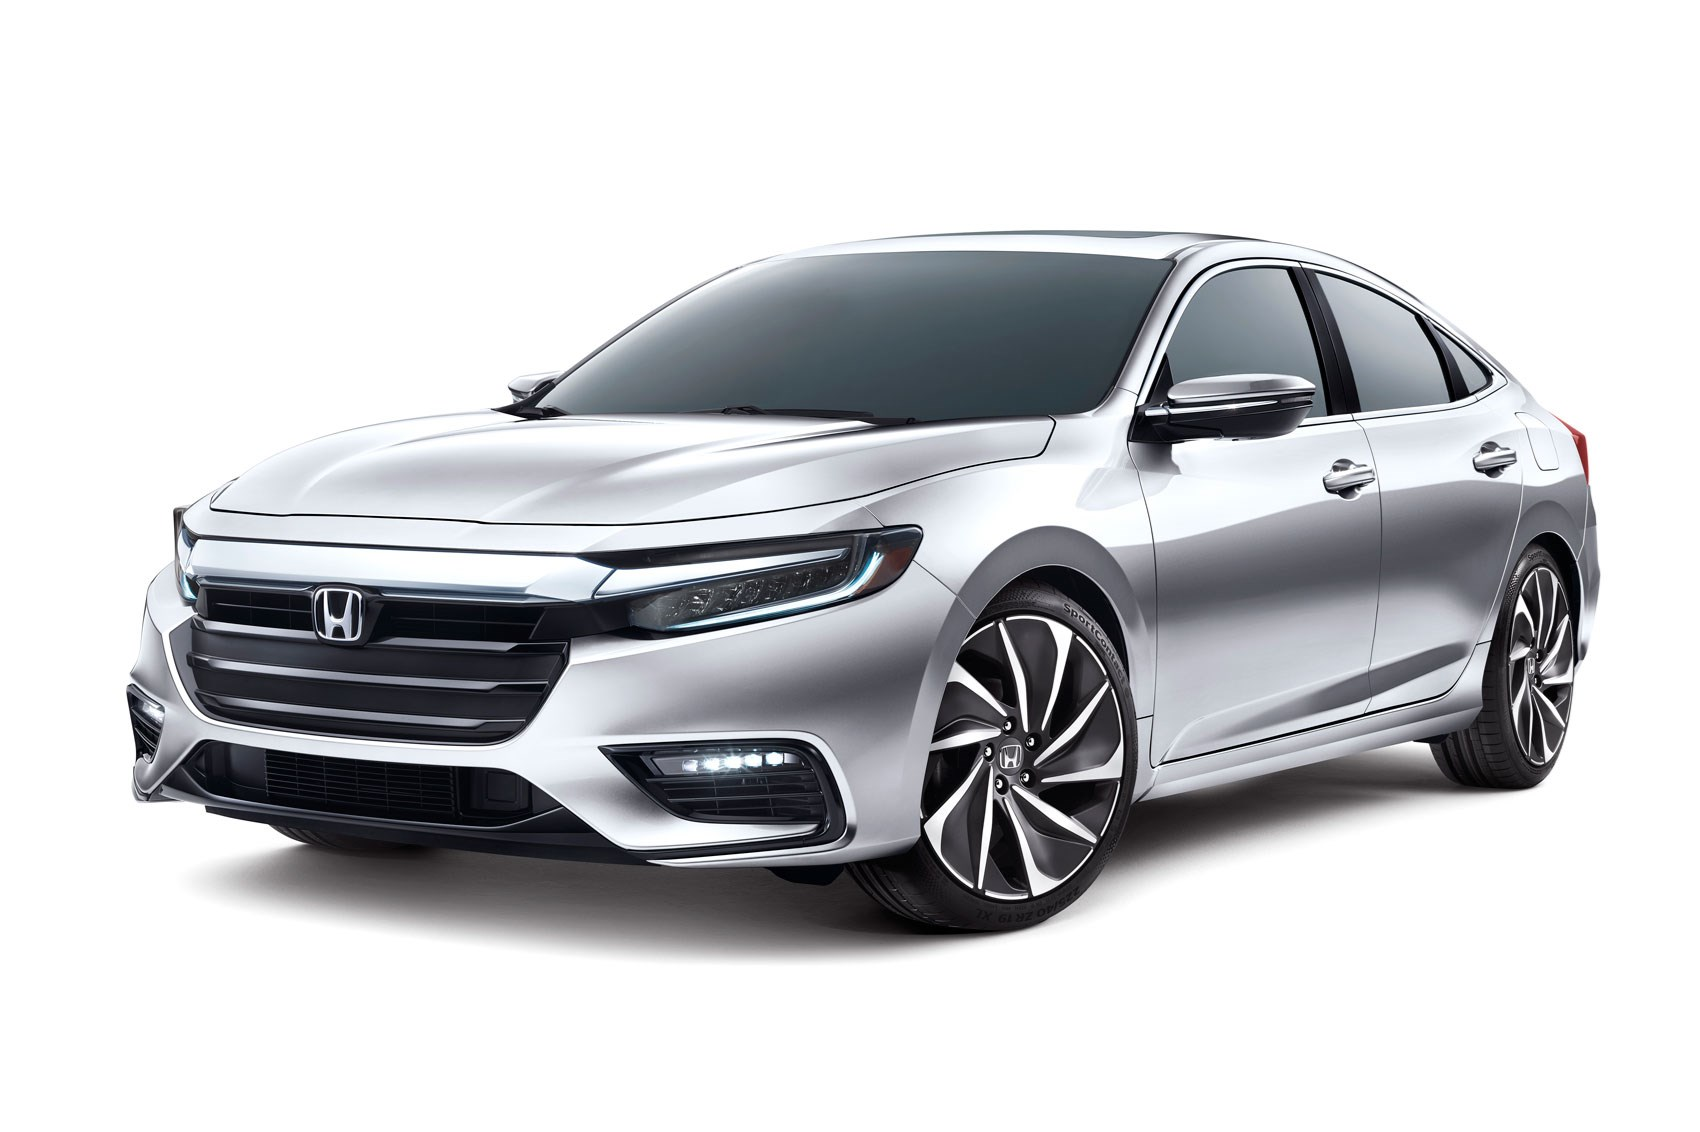 New Honda Accord >> New Honda Insight: sleek hybrid prototype's specs detailed at NAIAS 2018 by CAR Magazine